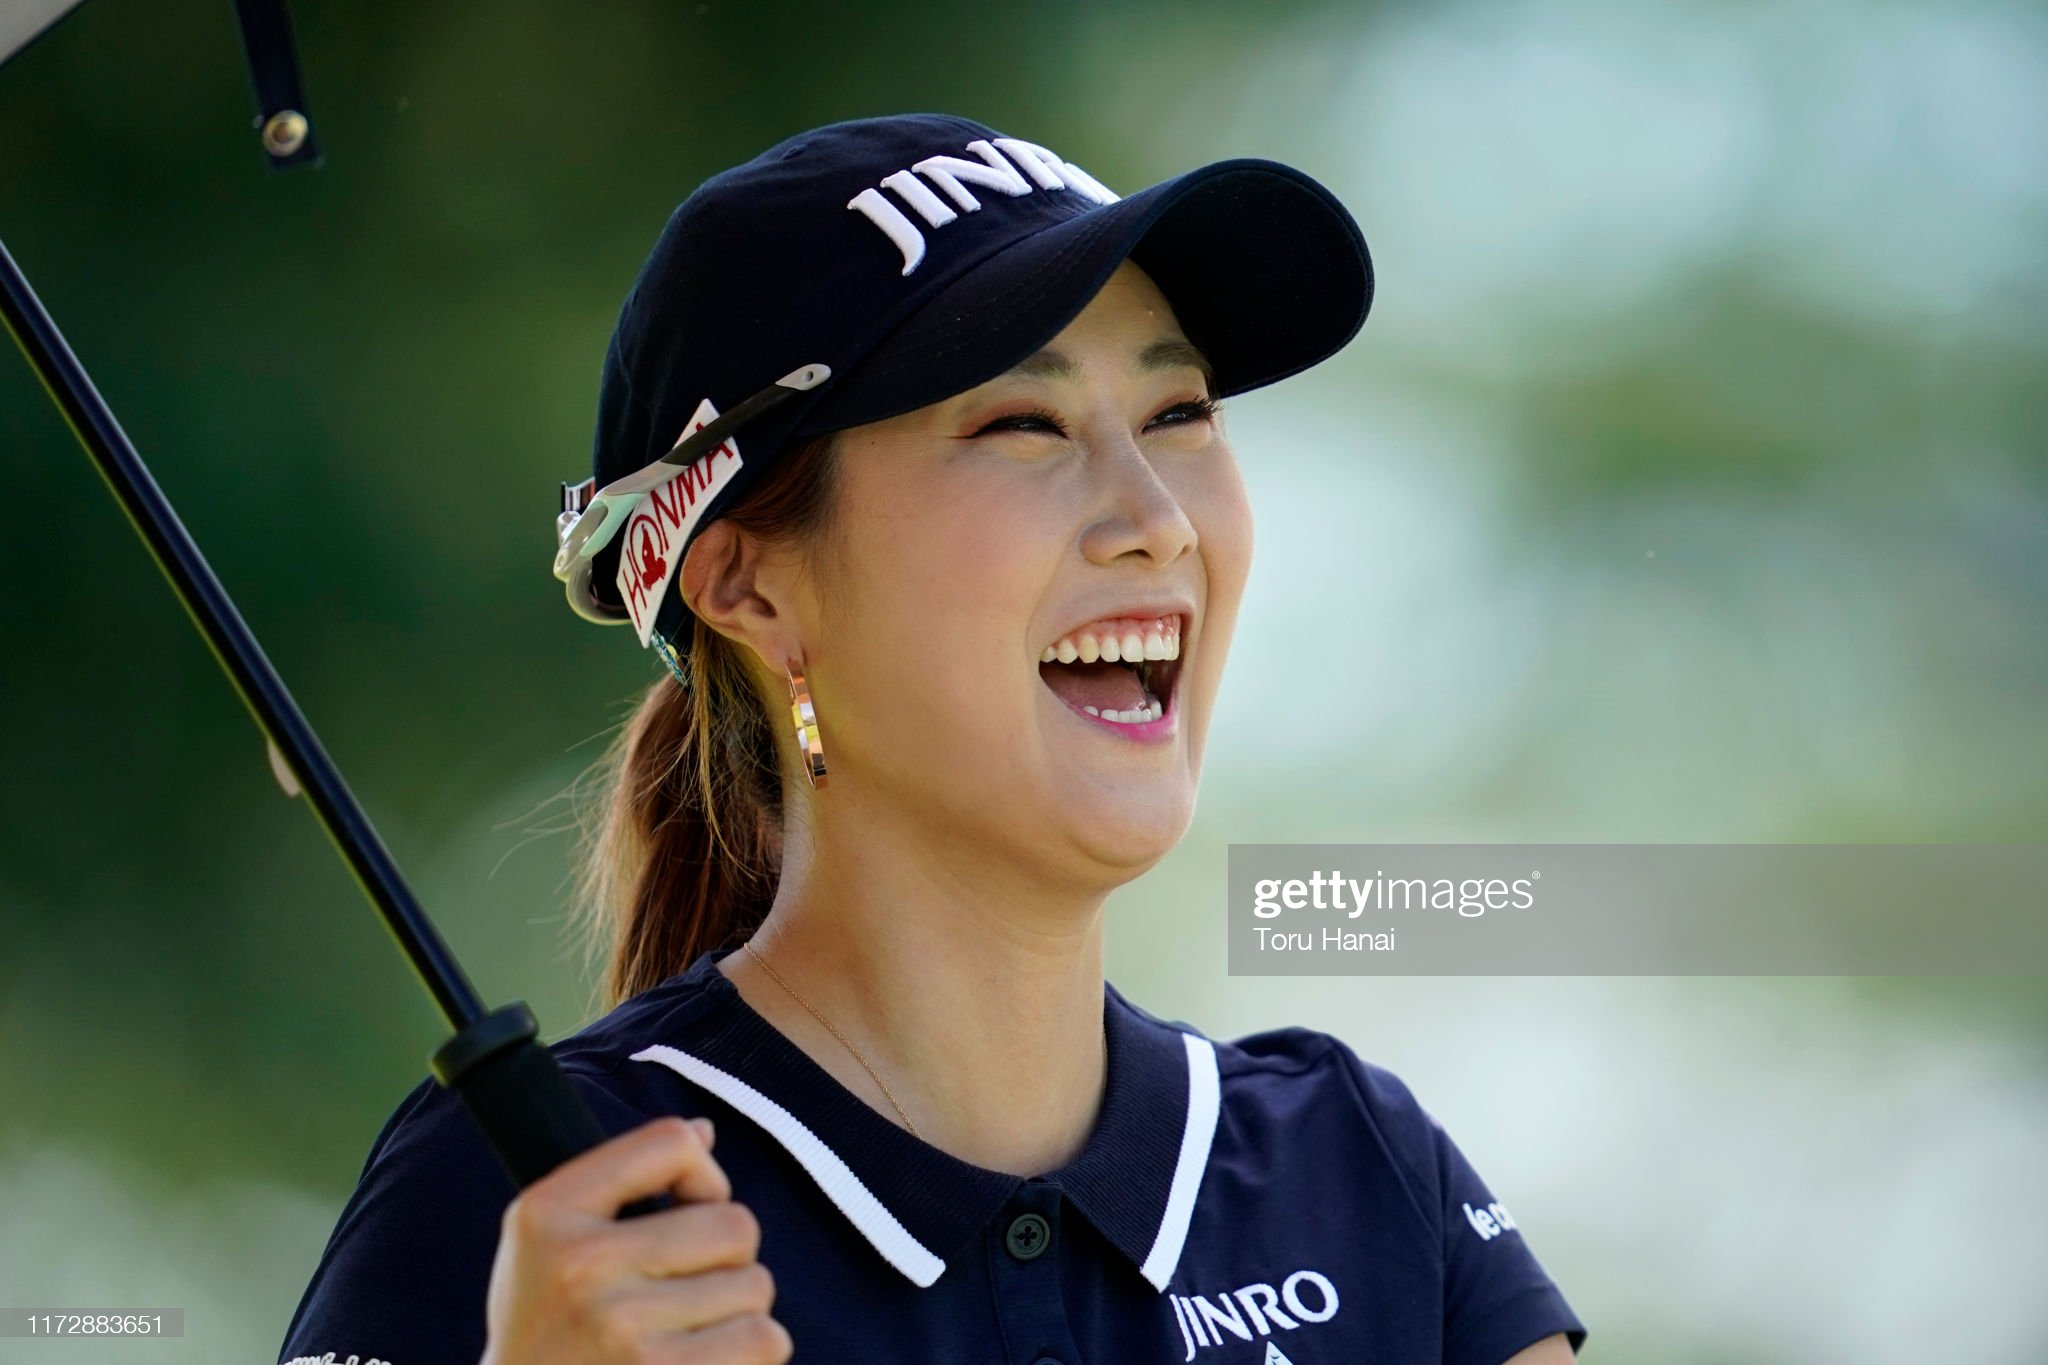 https://media.gettyimages.com/photos/haneul-kim-of-south-korea-smiles-on-the-7th-hole-during-the-second-picture-id1172883651?s=2048x2048